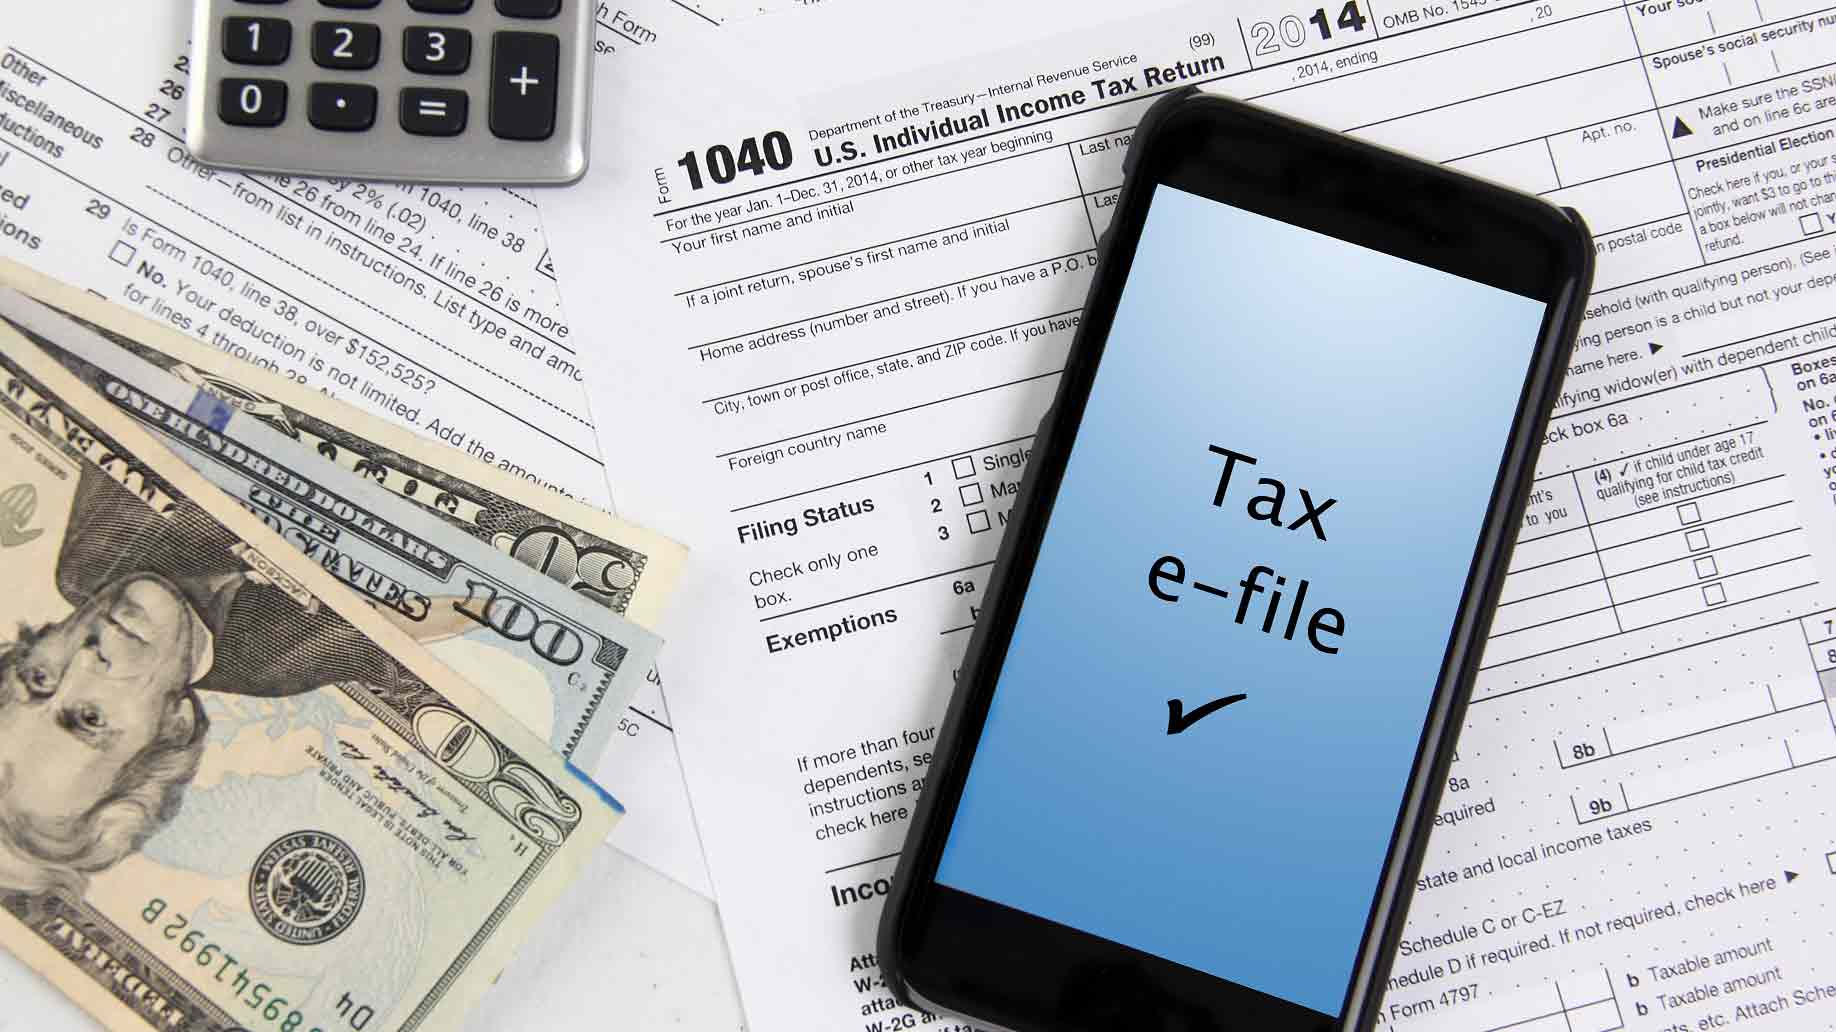 e-file taxes with mobile phone